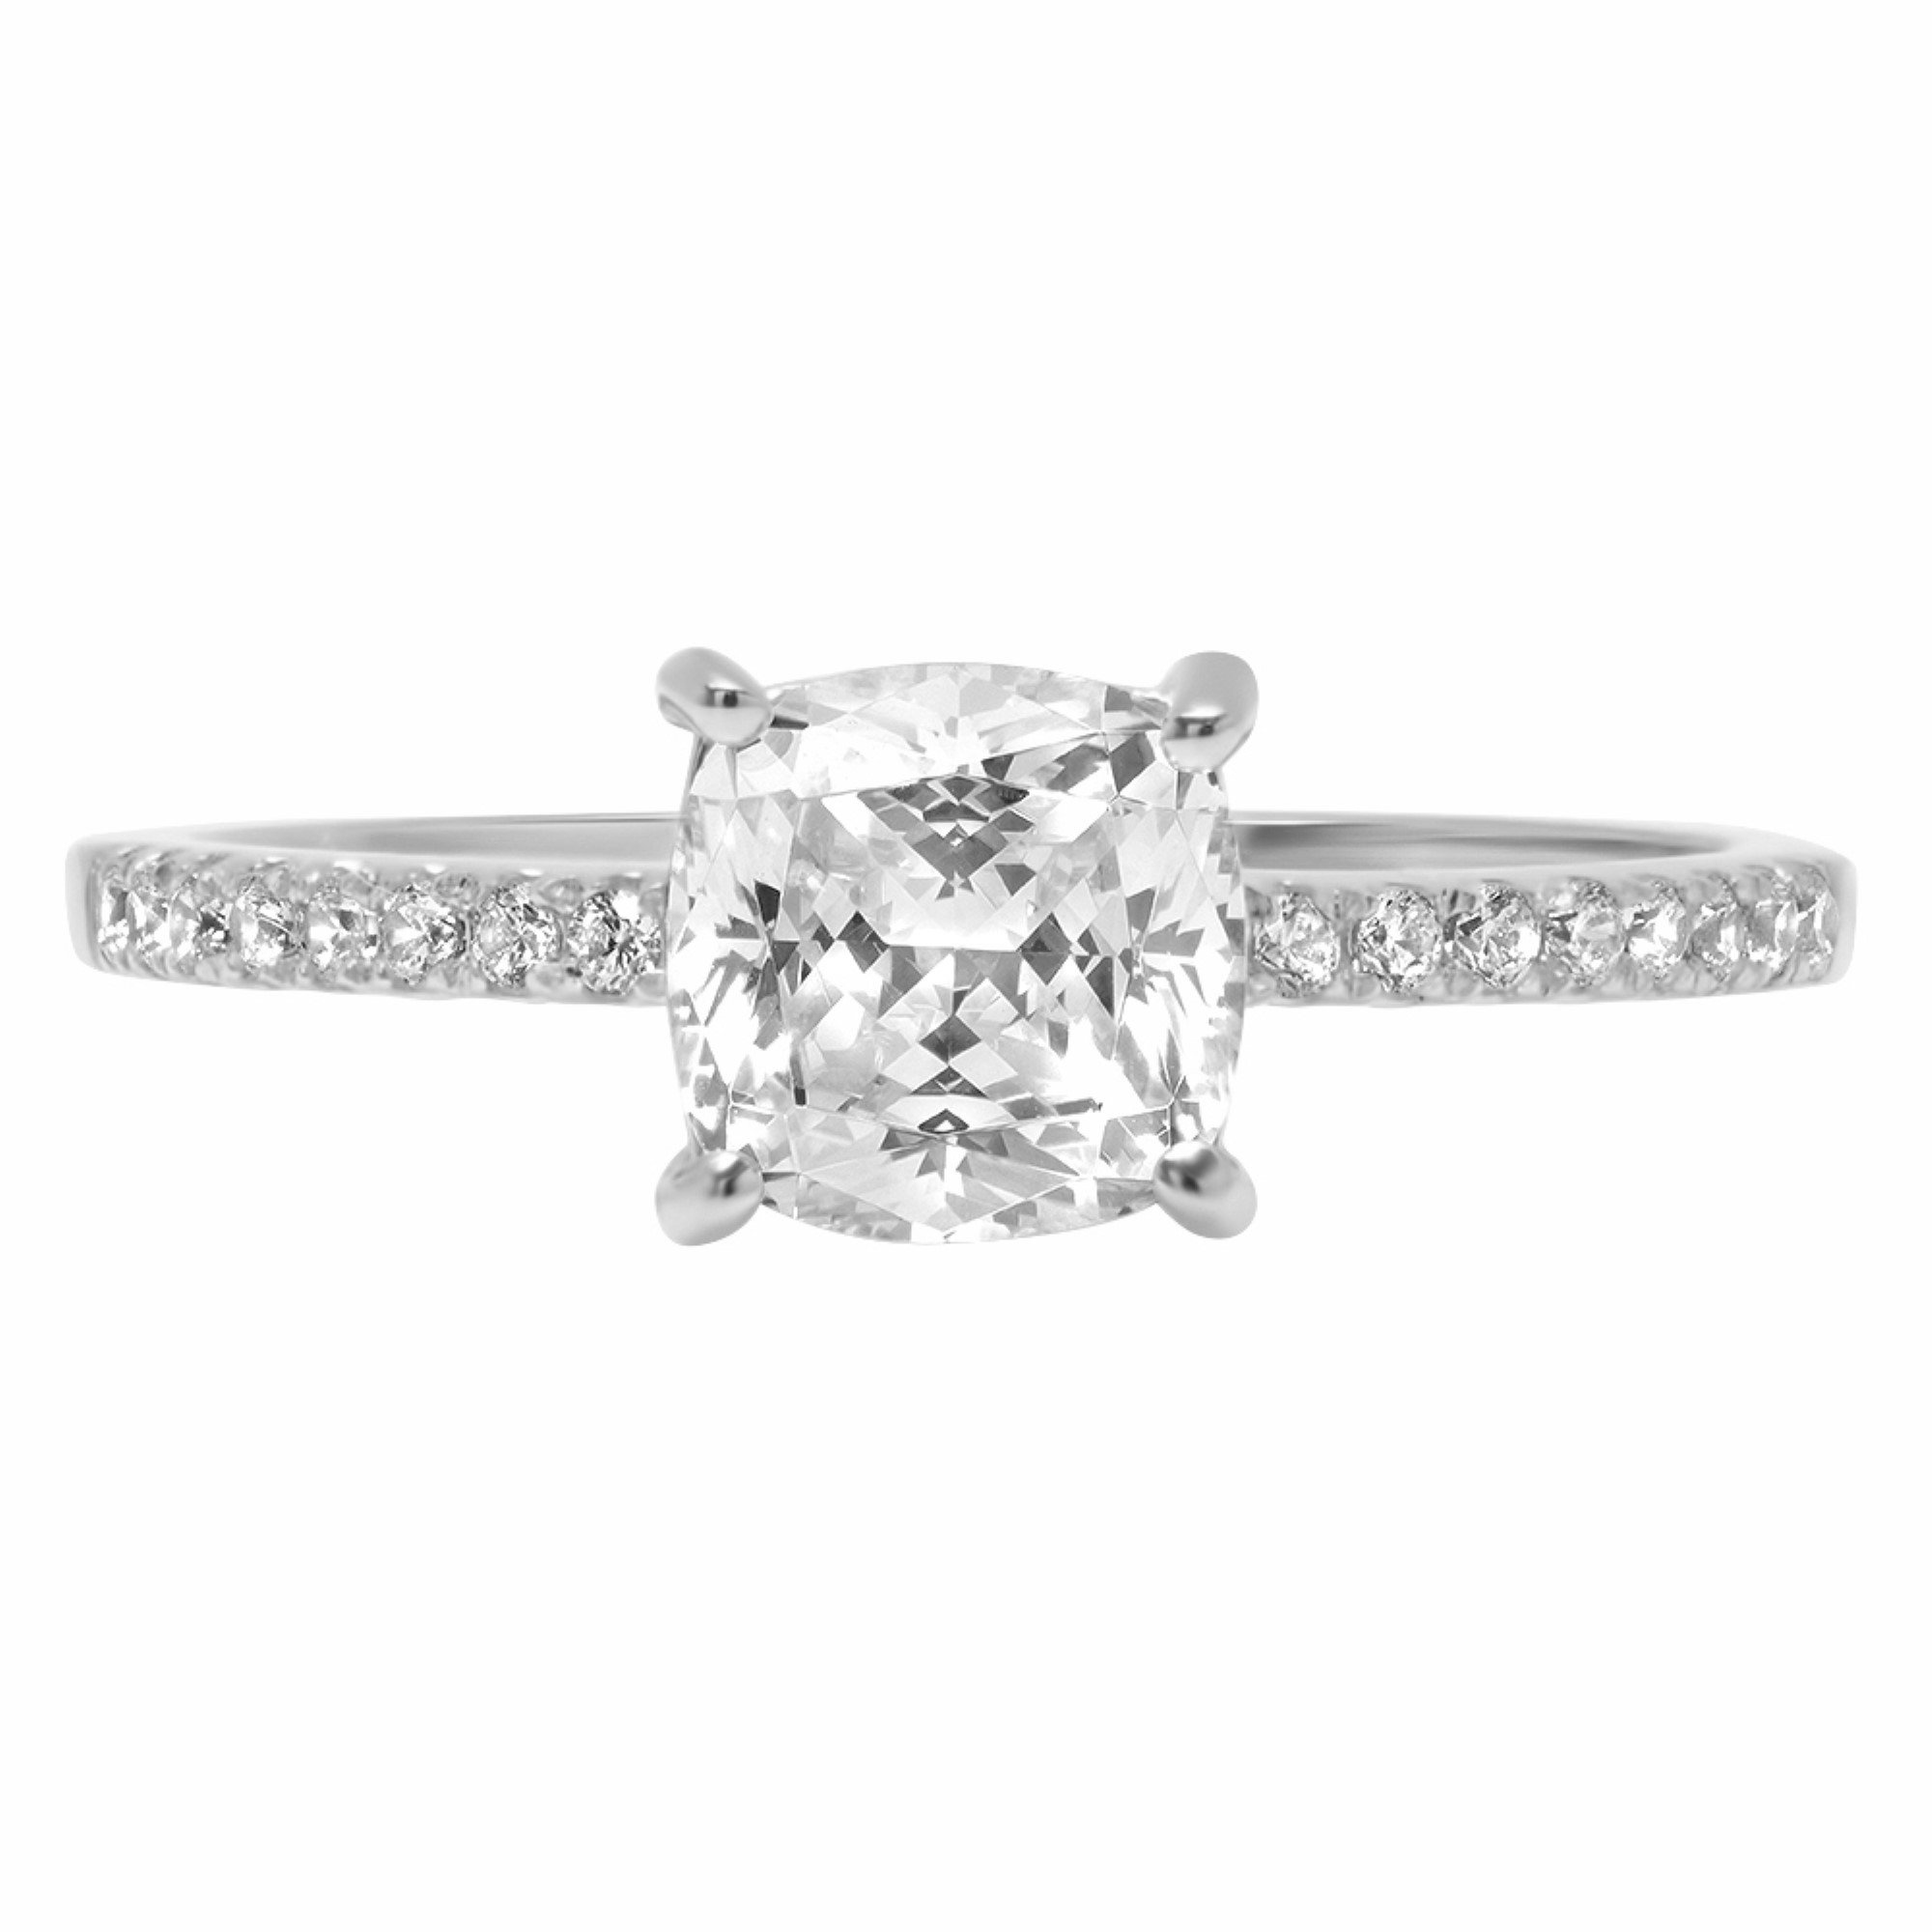 Cushion Round Cut Classic Solitaire Designer Wedding Bridal Statement Anniversary Engagement Promise Accent Solitaire Ring 14k White Gold, 1.86ct, 4 by Clara Pucci